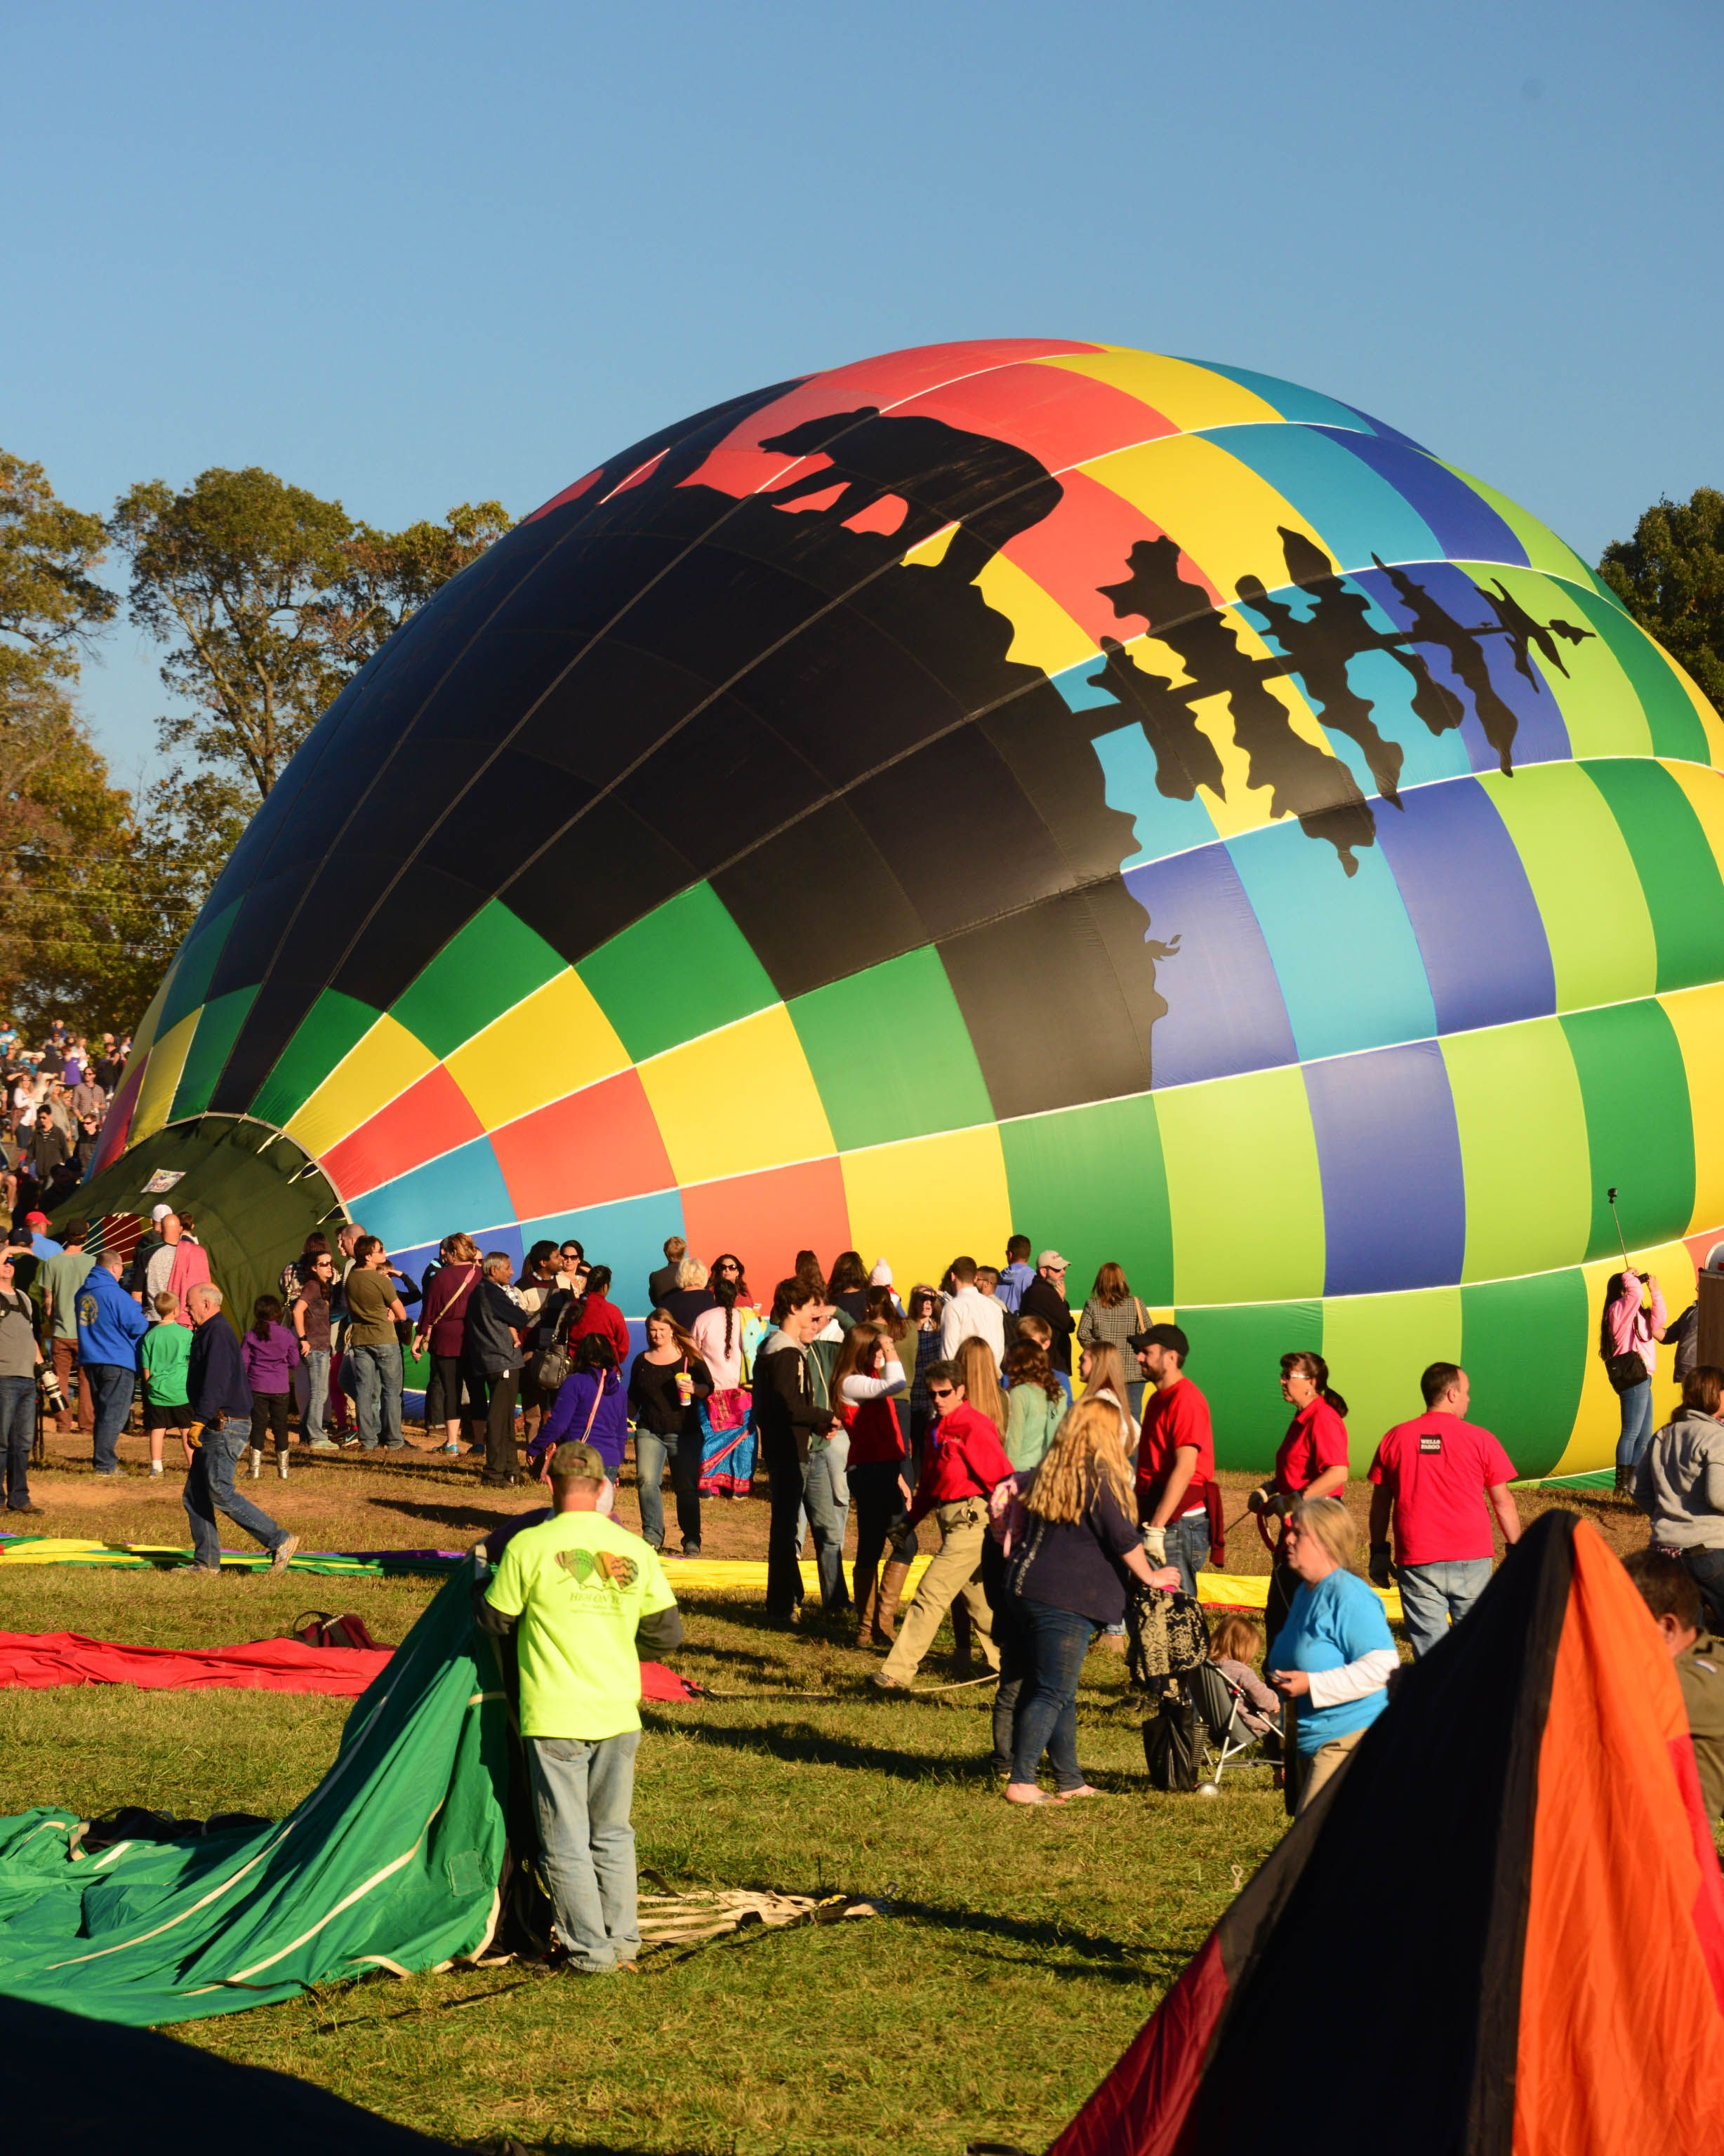 Five scheduled flights over the weekend and Balloon Glow